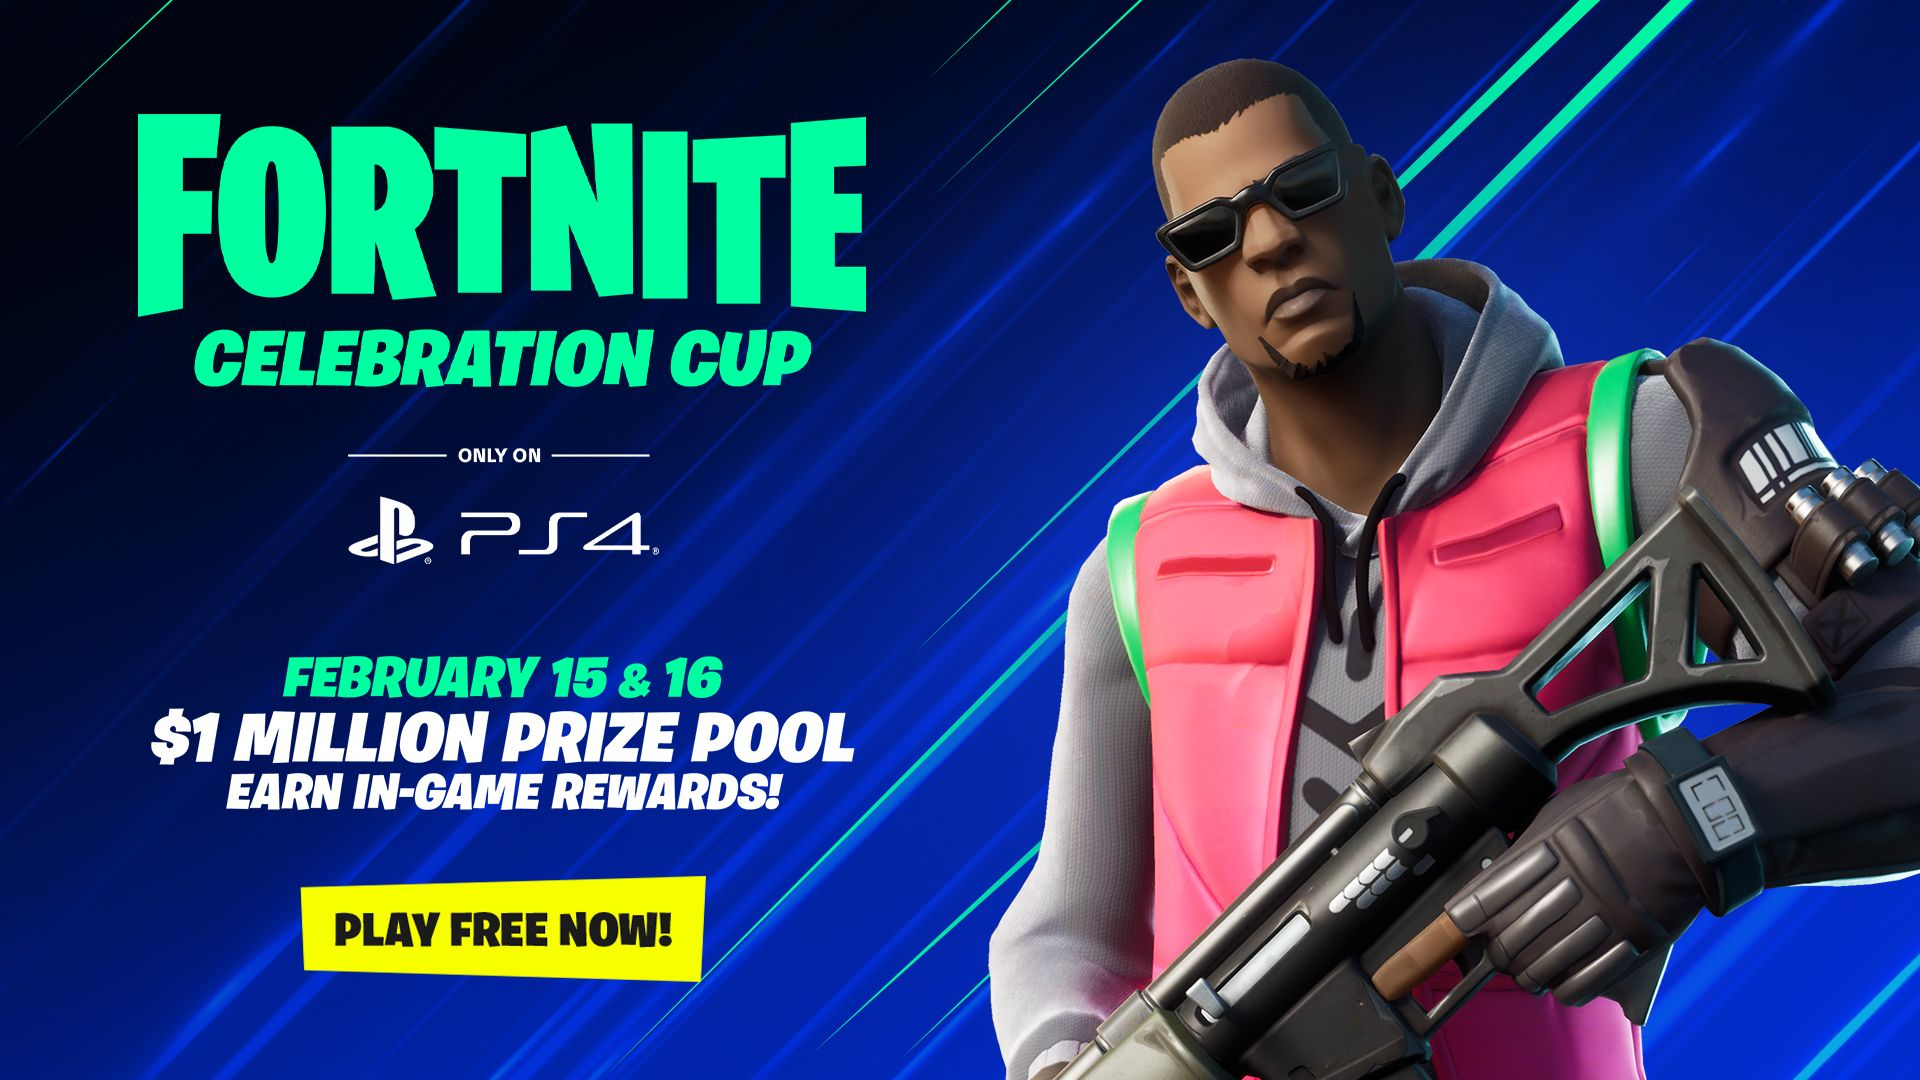 Jeste li spremni za Fortnite Celebration Cup?